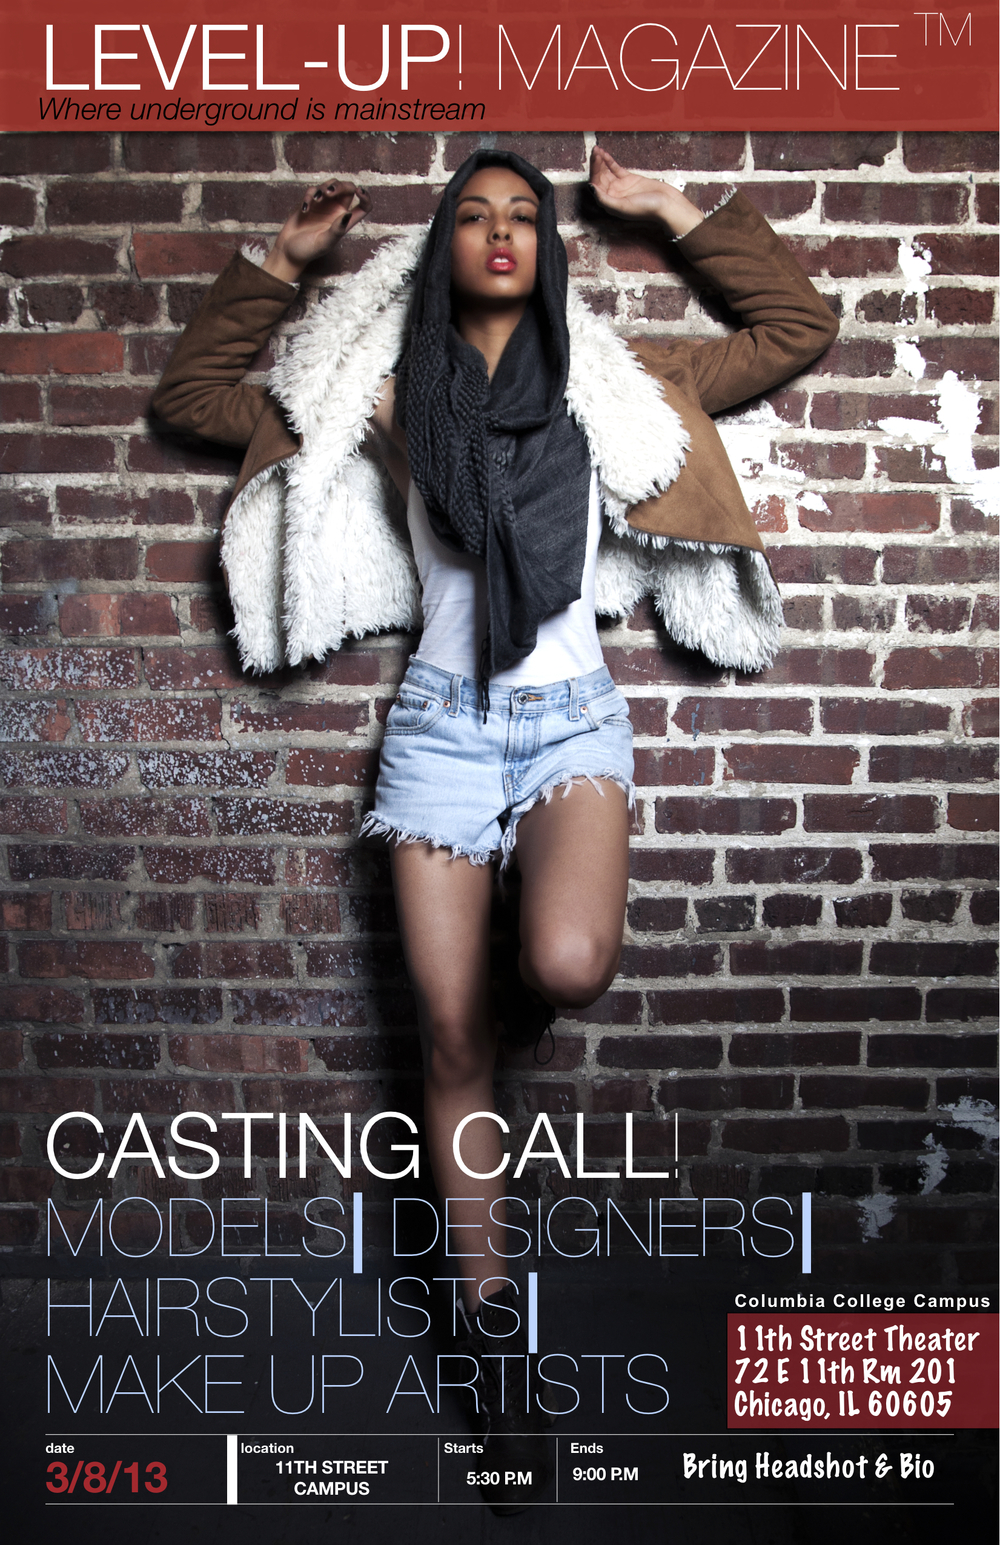 LEVEL-UP! MAGAZINE CASTING CALL! March 8th 2013 MODELS| DESIGNERS| HAIRSTYLISTS| MAKE UP ARTISTS 11th Street Theater 72 E 11th ST. Rm 201 Chicago, IL 60605  STARTS: 5:30PM Ends 9:00PM Columbia College Campus Bring Headshot & Bio